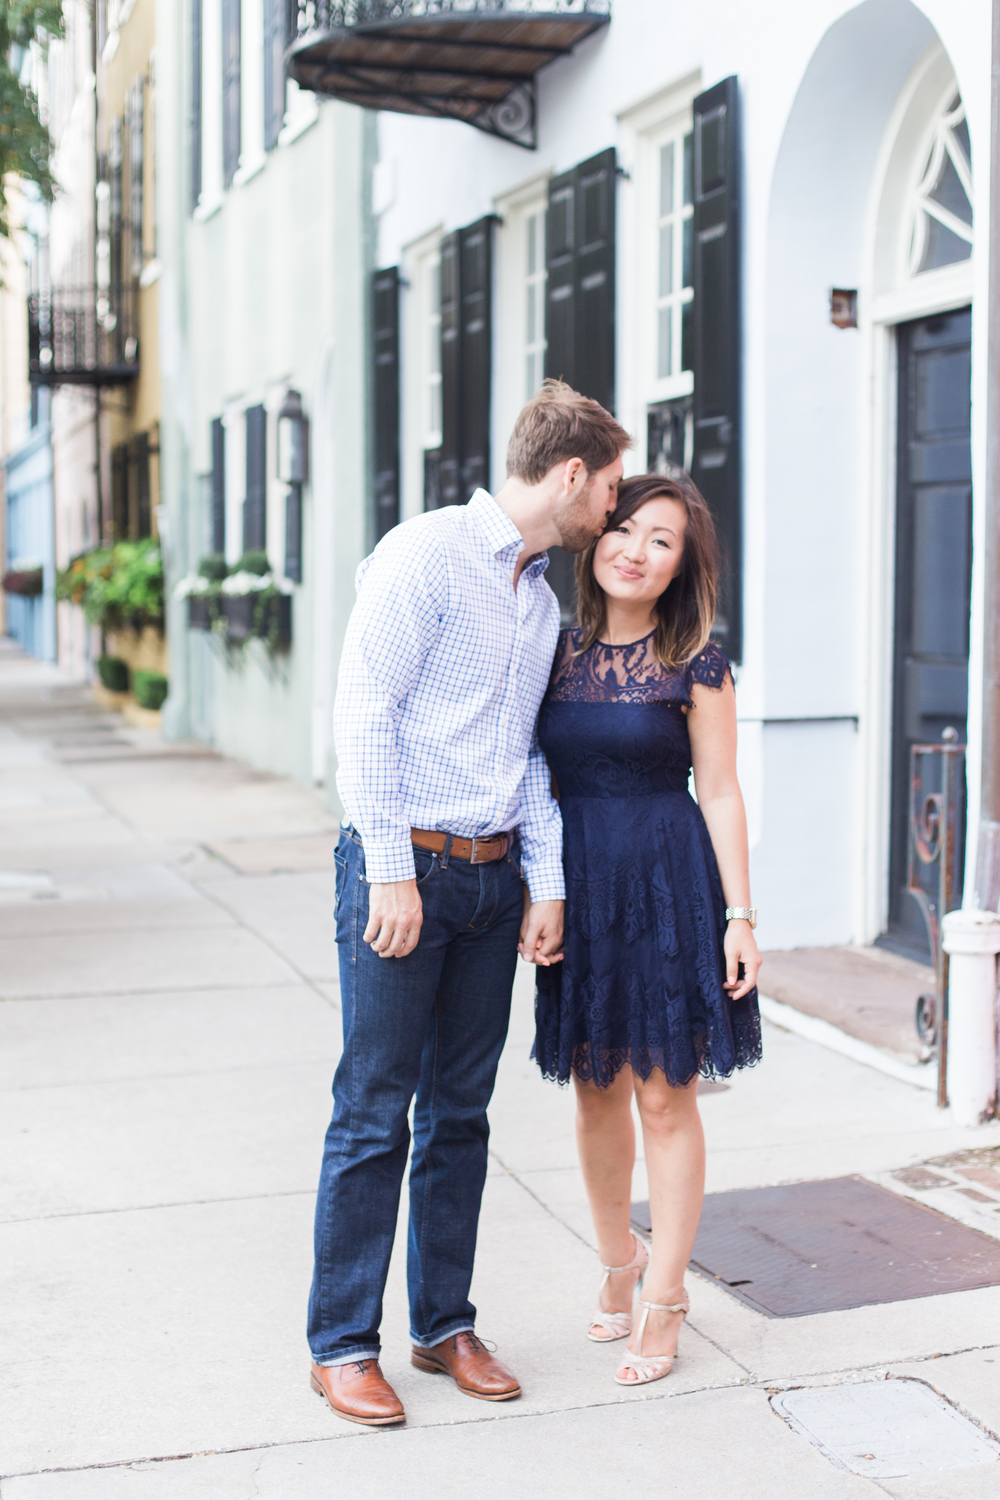 Mirrormirror-muah-engagment-airbrush-makeup-charleston-hair-the-click-chick-photography-114.jpg